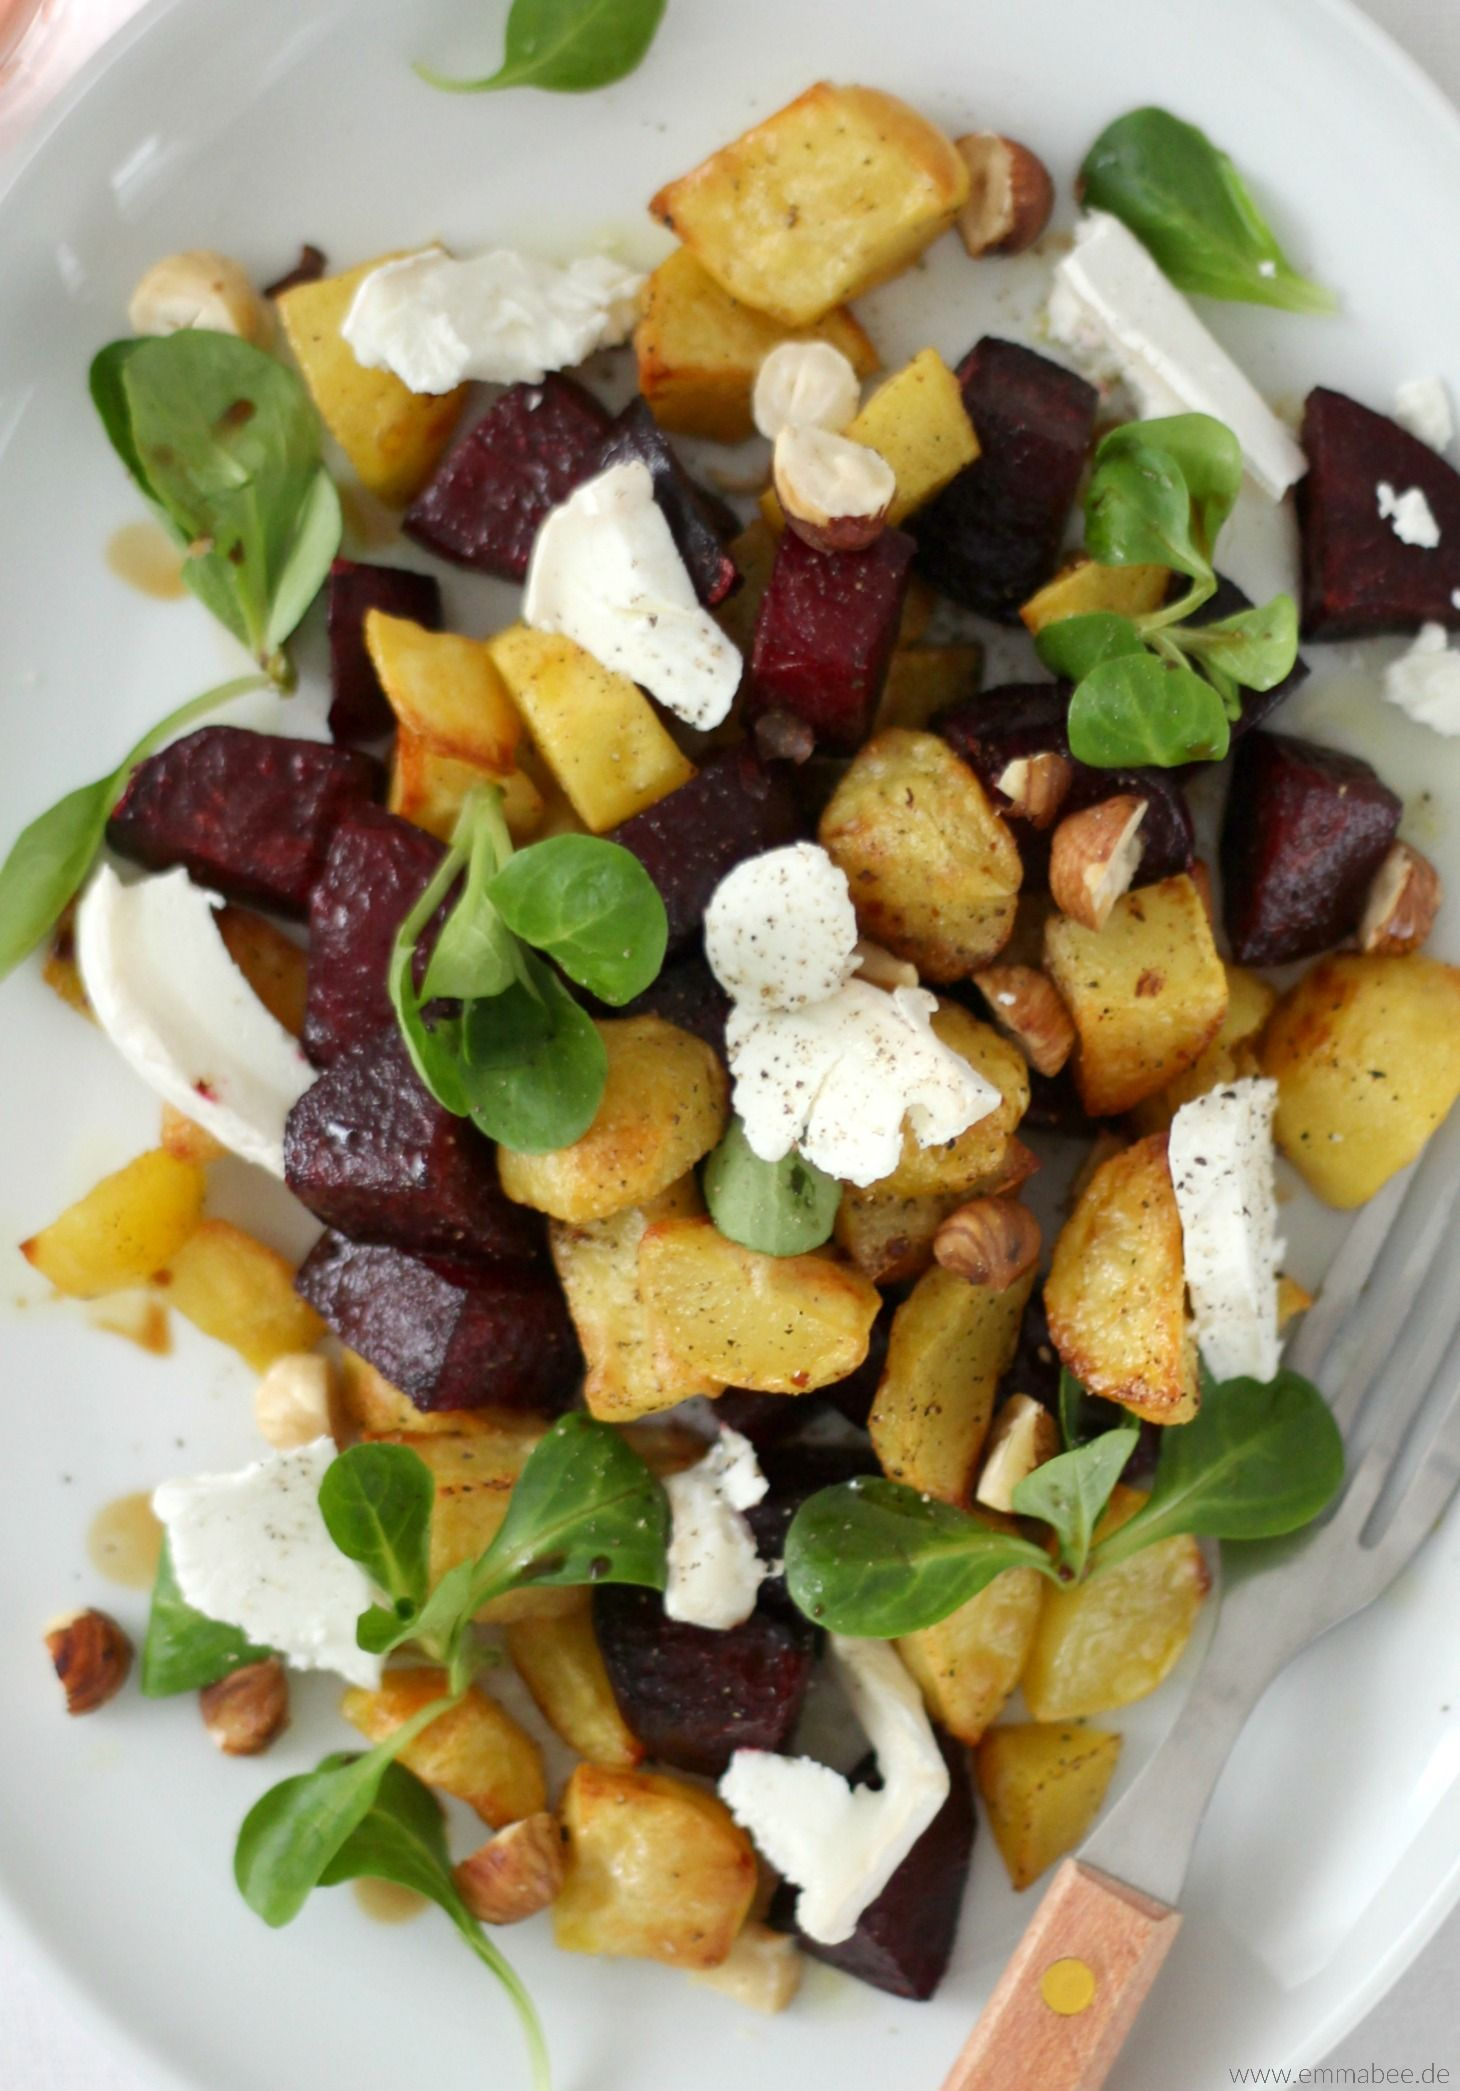 {Recipe} Warm organic beetroot salad with goat cheese and roasted hazelnuts - Emma Bee -  {Recipe} Warm organic beetroot salad with goat cheese and roasted hazelnuts – Emma Bee  - #Bee #beetroot #breakfastrecipes #cheese #cleaneating #cookingtips #easyrecipes #Emma #glutenfree #Goat #hazelnuts #organic #paleo #recipe #ROASTED #salad #warm